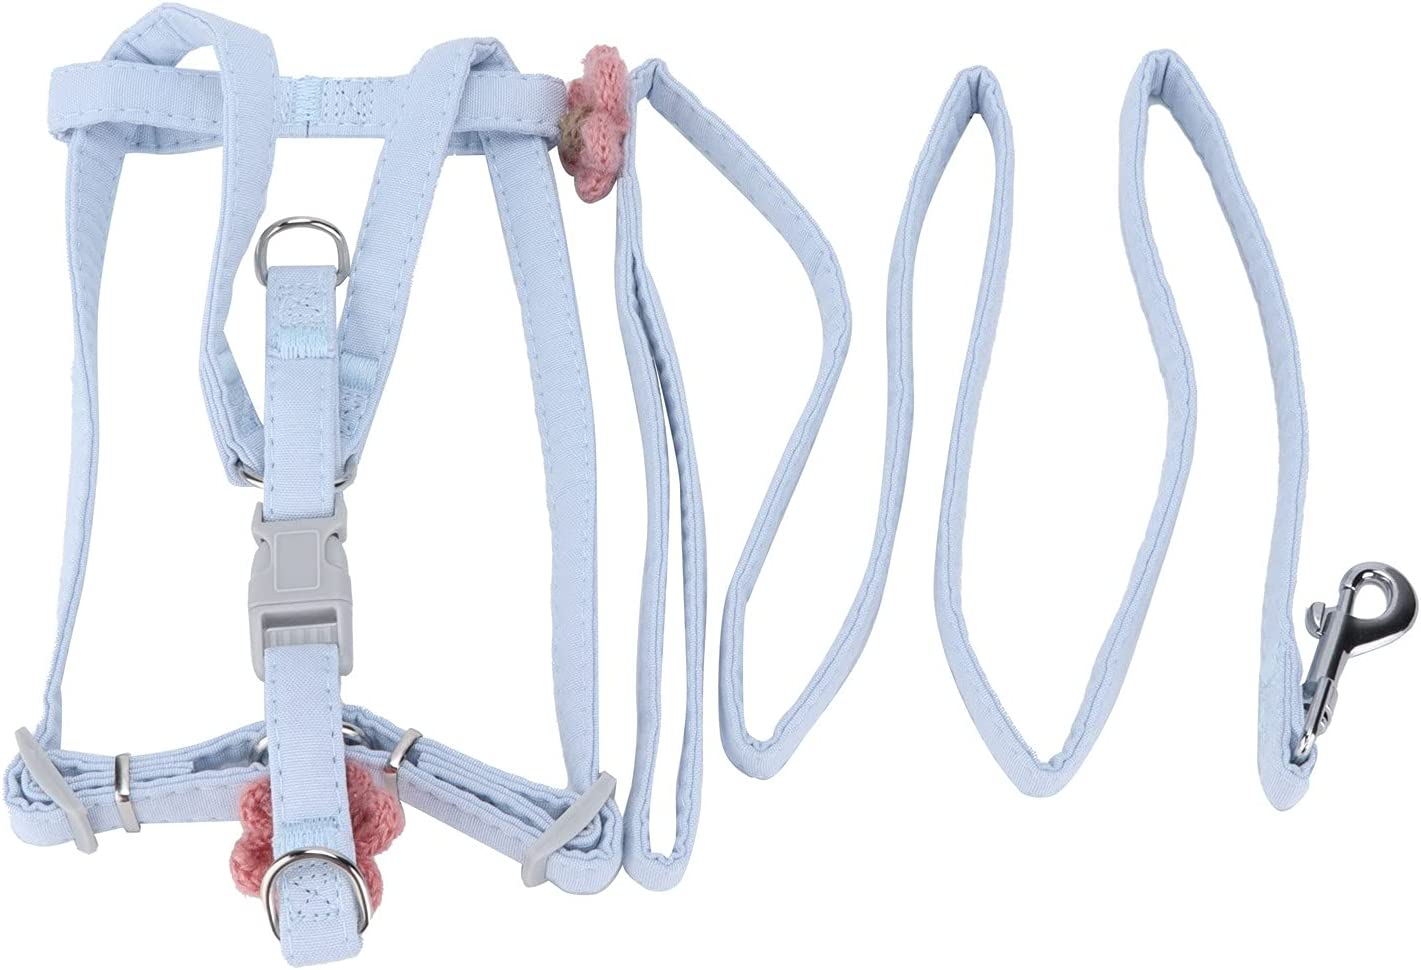 GLOGLOW Max 43% OFF Cat Harness and Leash Adjustable Set w Pet Lowest price challenge Soft